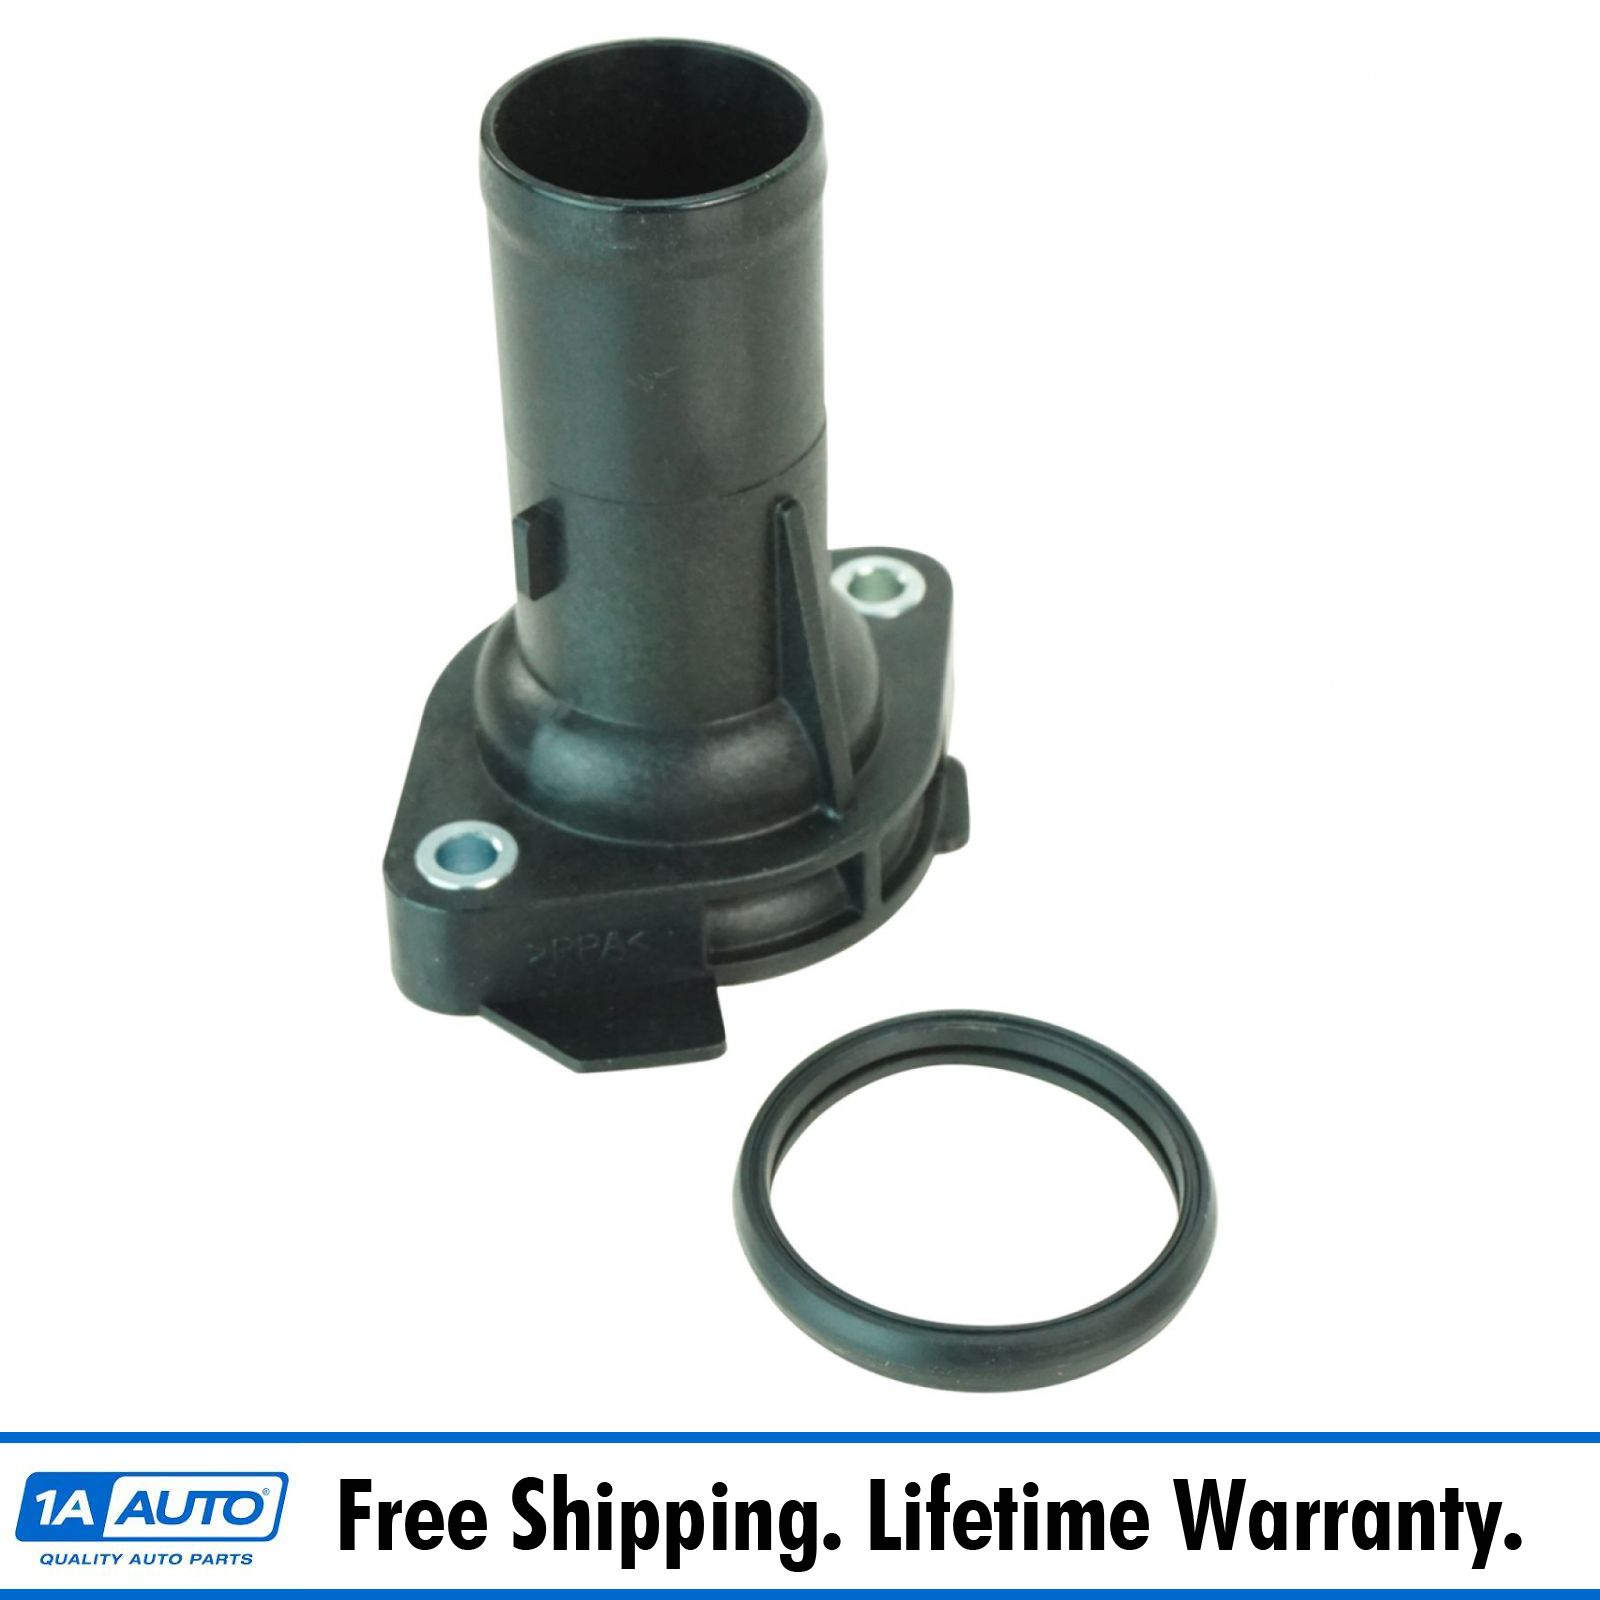 2013 Dodge Grand Caravan Thermostat Replacement